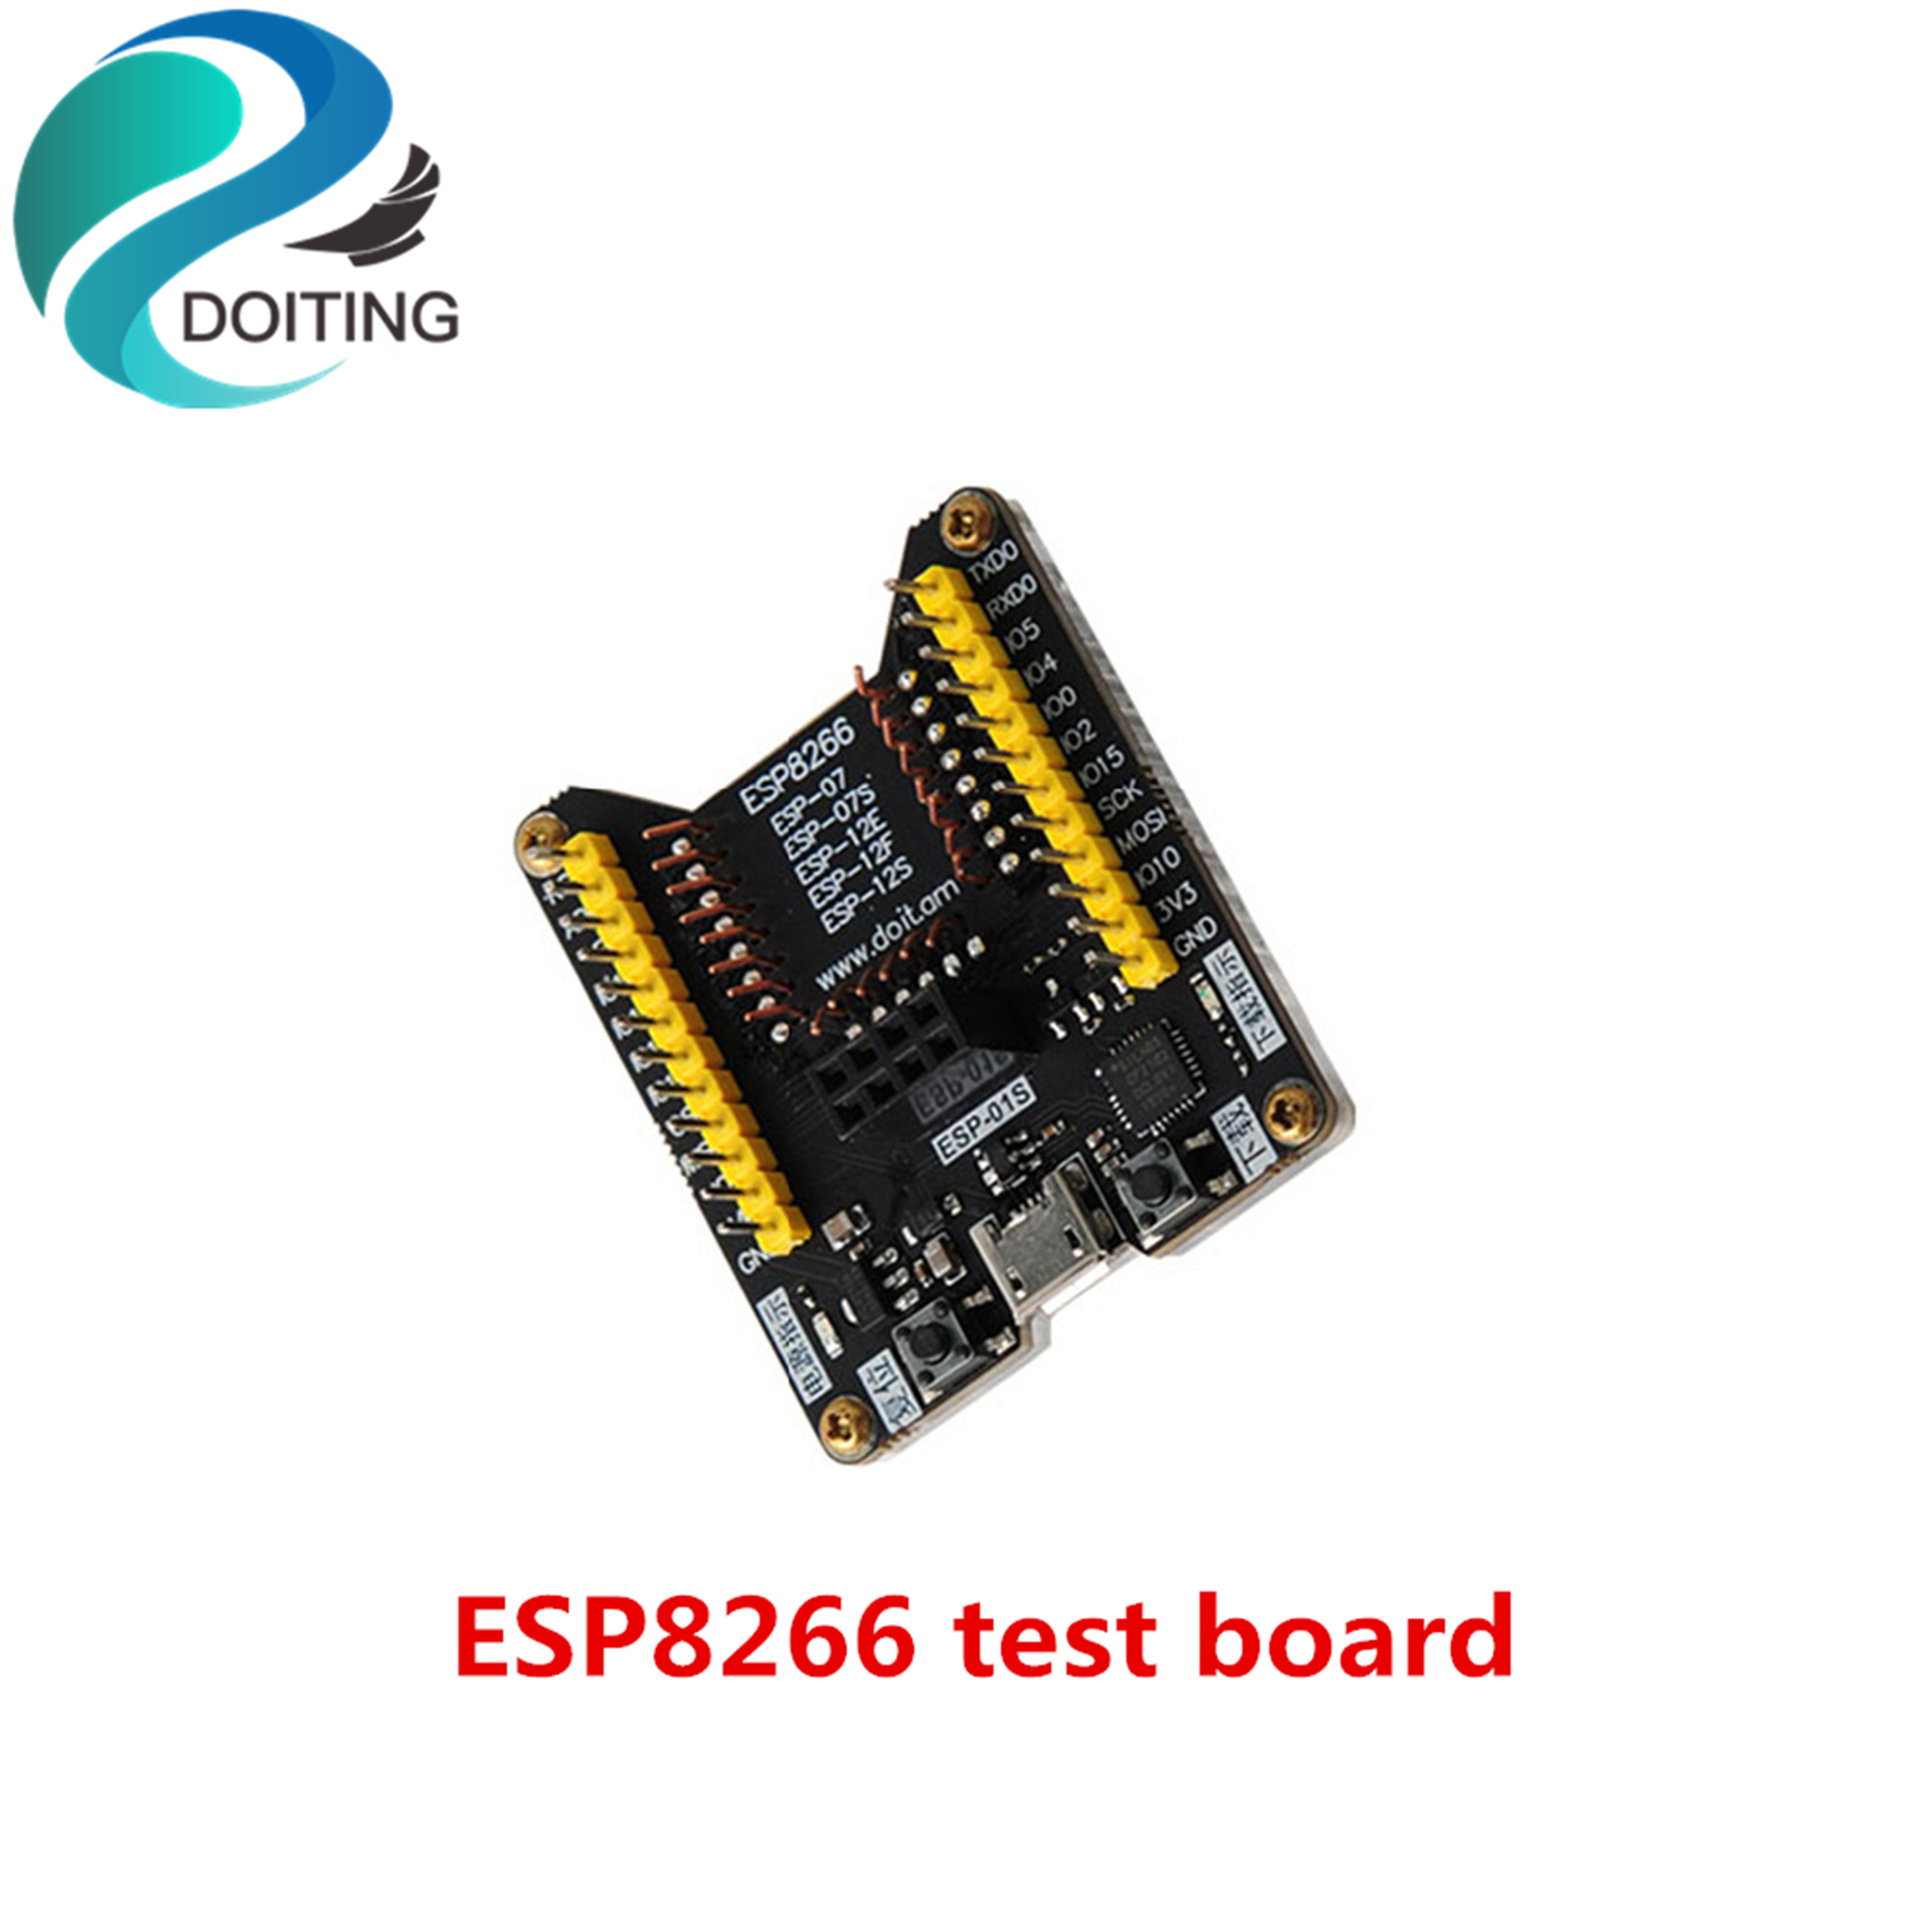 DOITING ESP8266 Test Board Development Board Flash Download Tool Firmware Downloader Program Flashing Support ESP-12F/ESP-07S